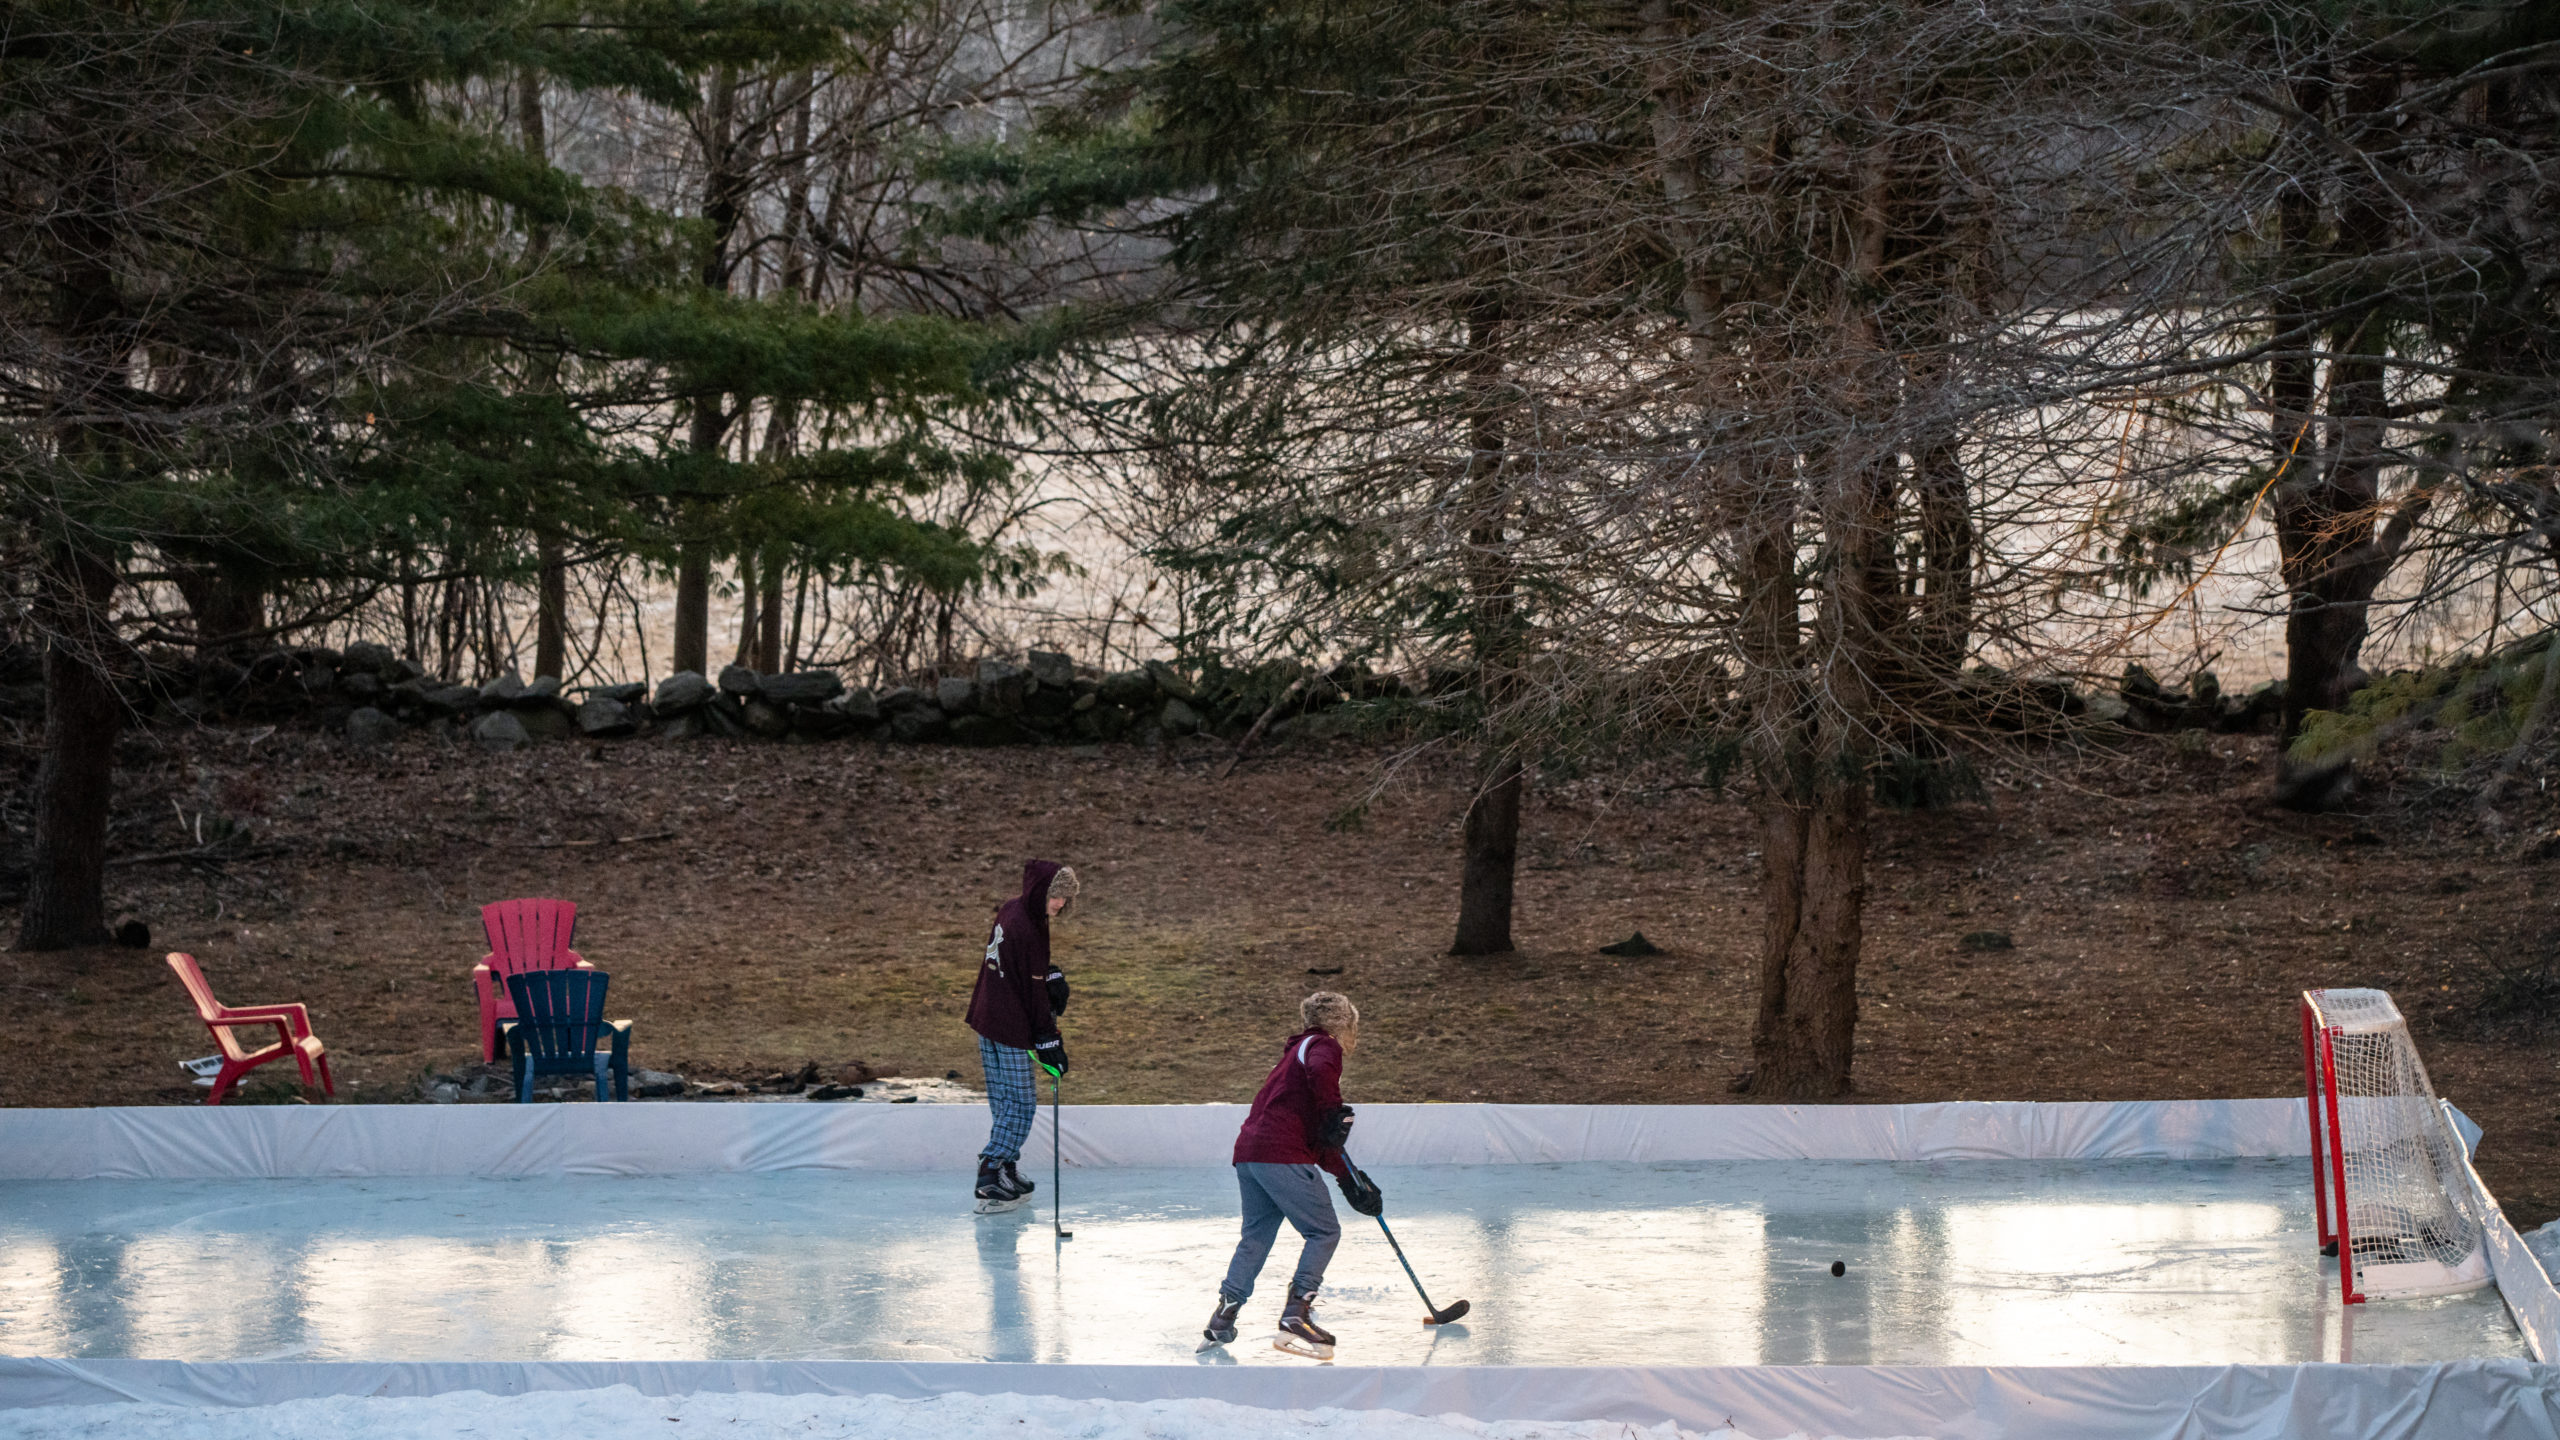 The Demand For Backyard Ice Rinks Heats Up Amid The Pandemic